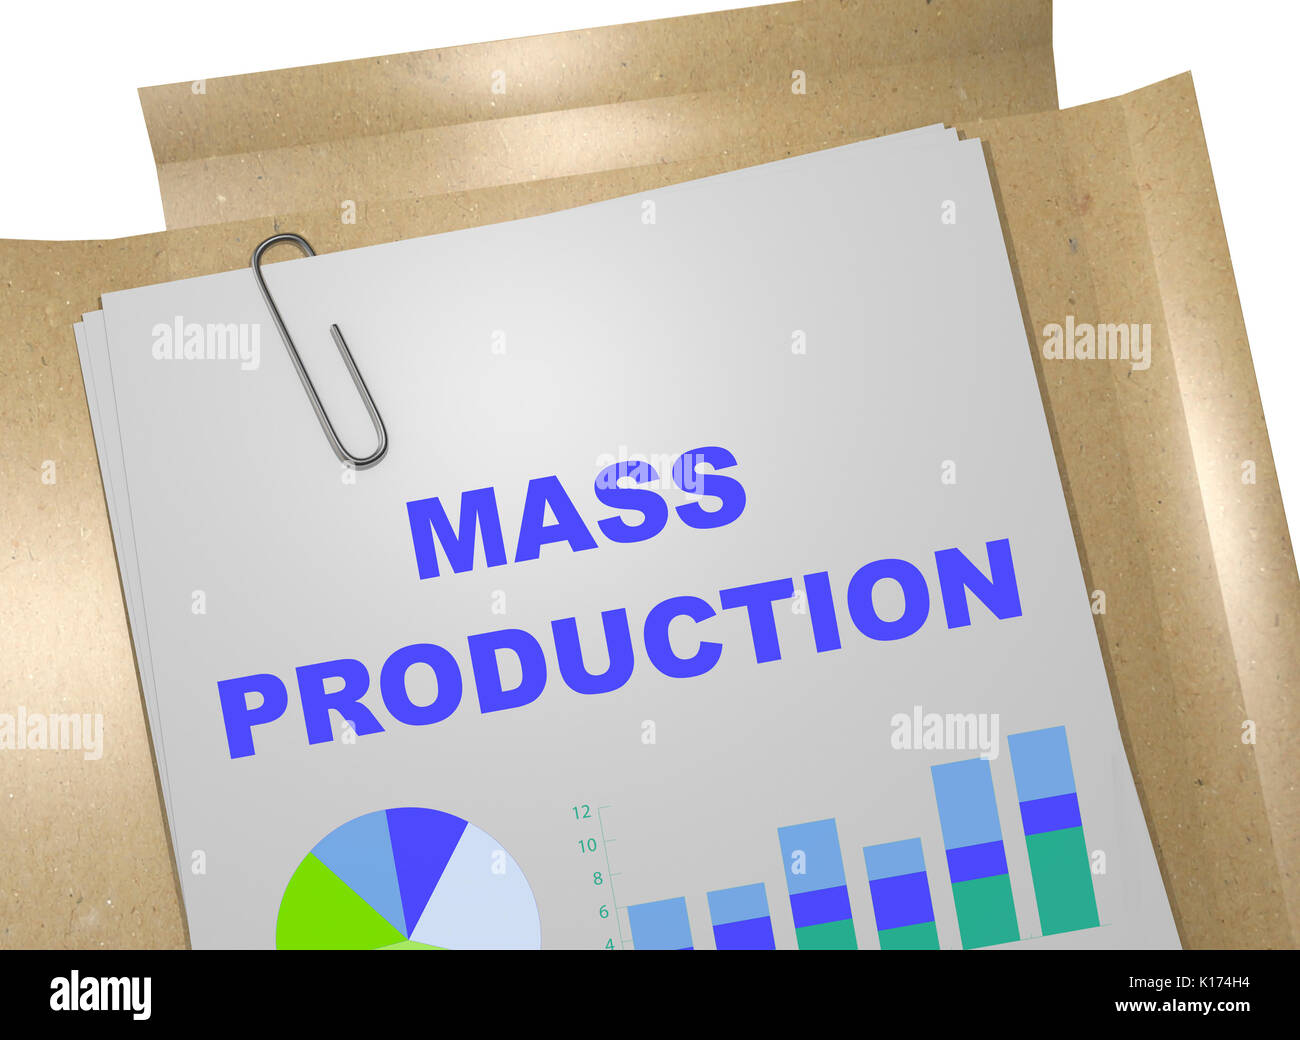 3D illustration of 'MASS PRODUCTION' title on business document - Stock Image